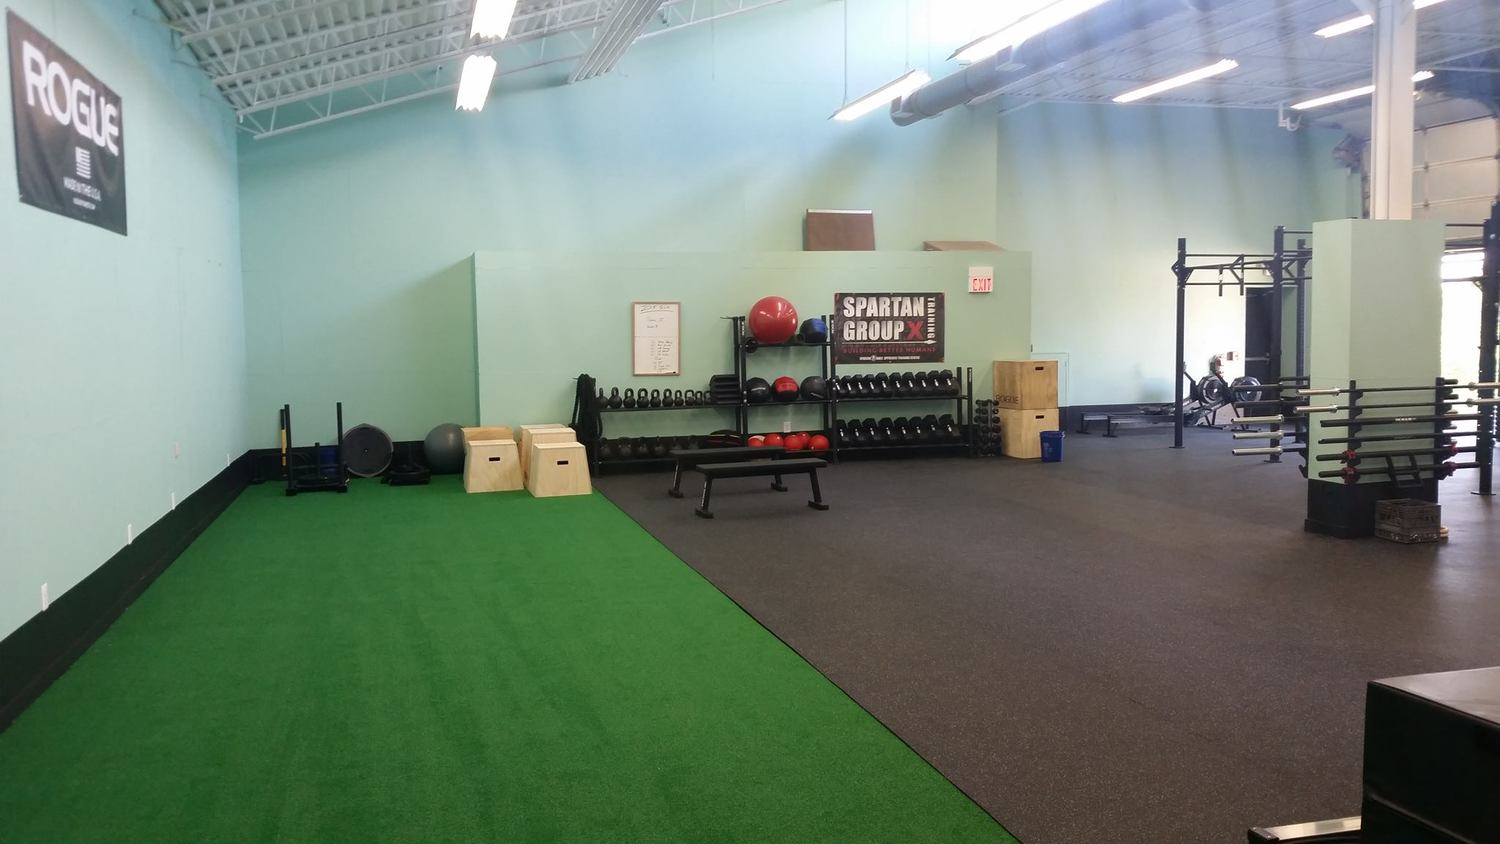 Greensburg Spartan Group X (SGX) — True Health and Fitness